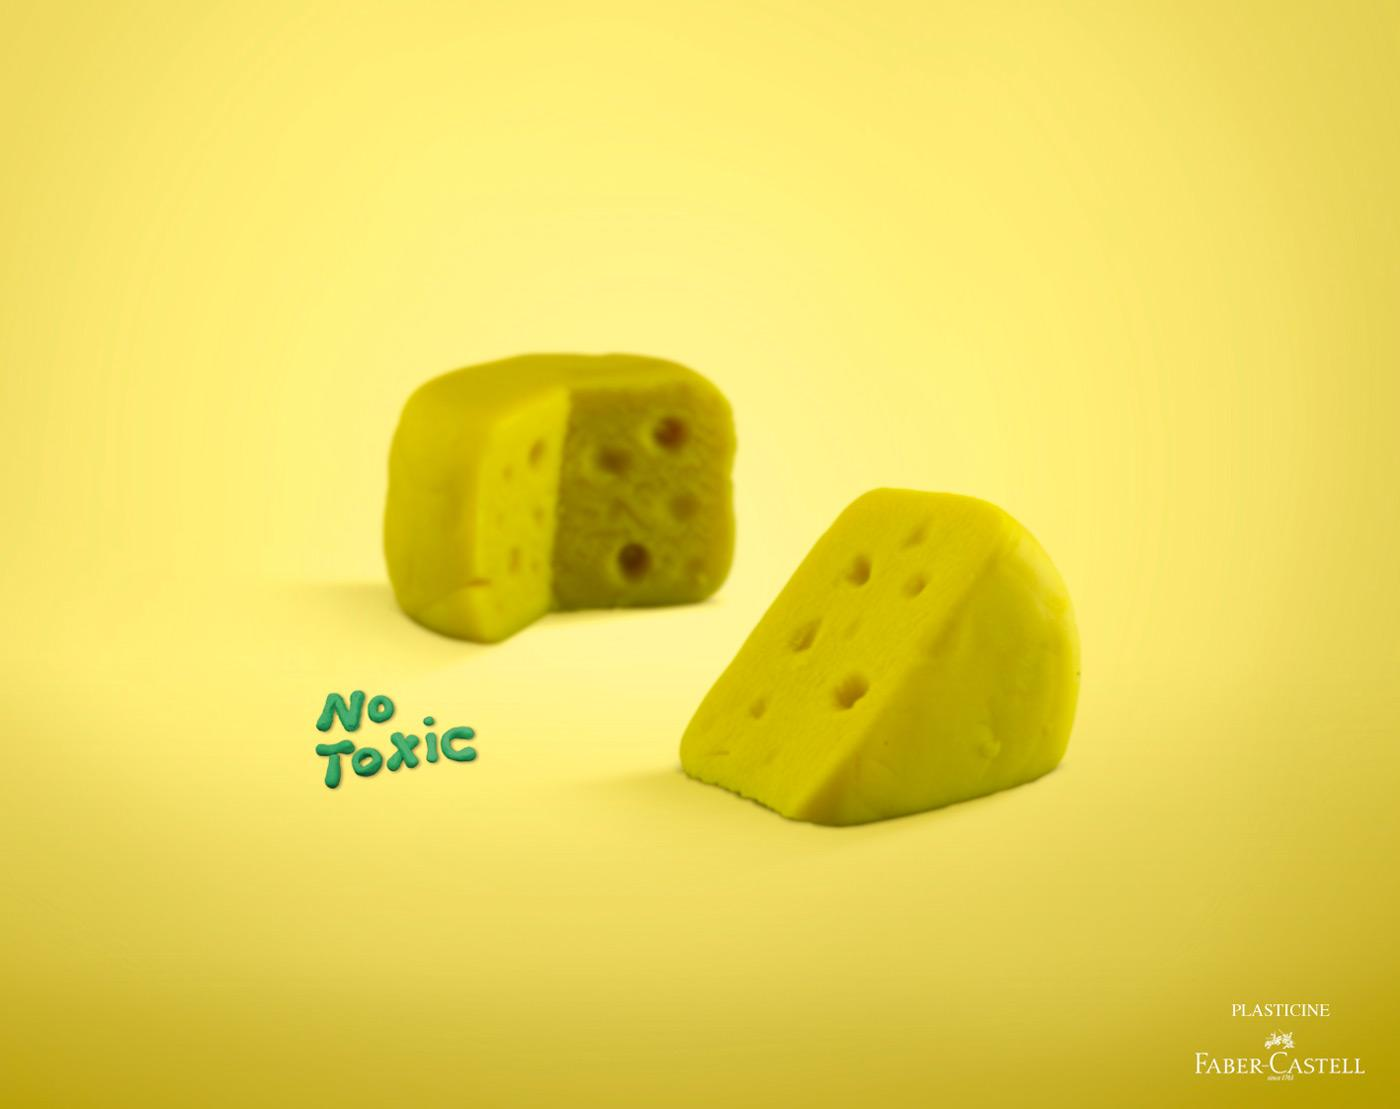 Faber-Castell Print Ad -  Cheese